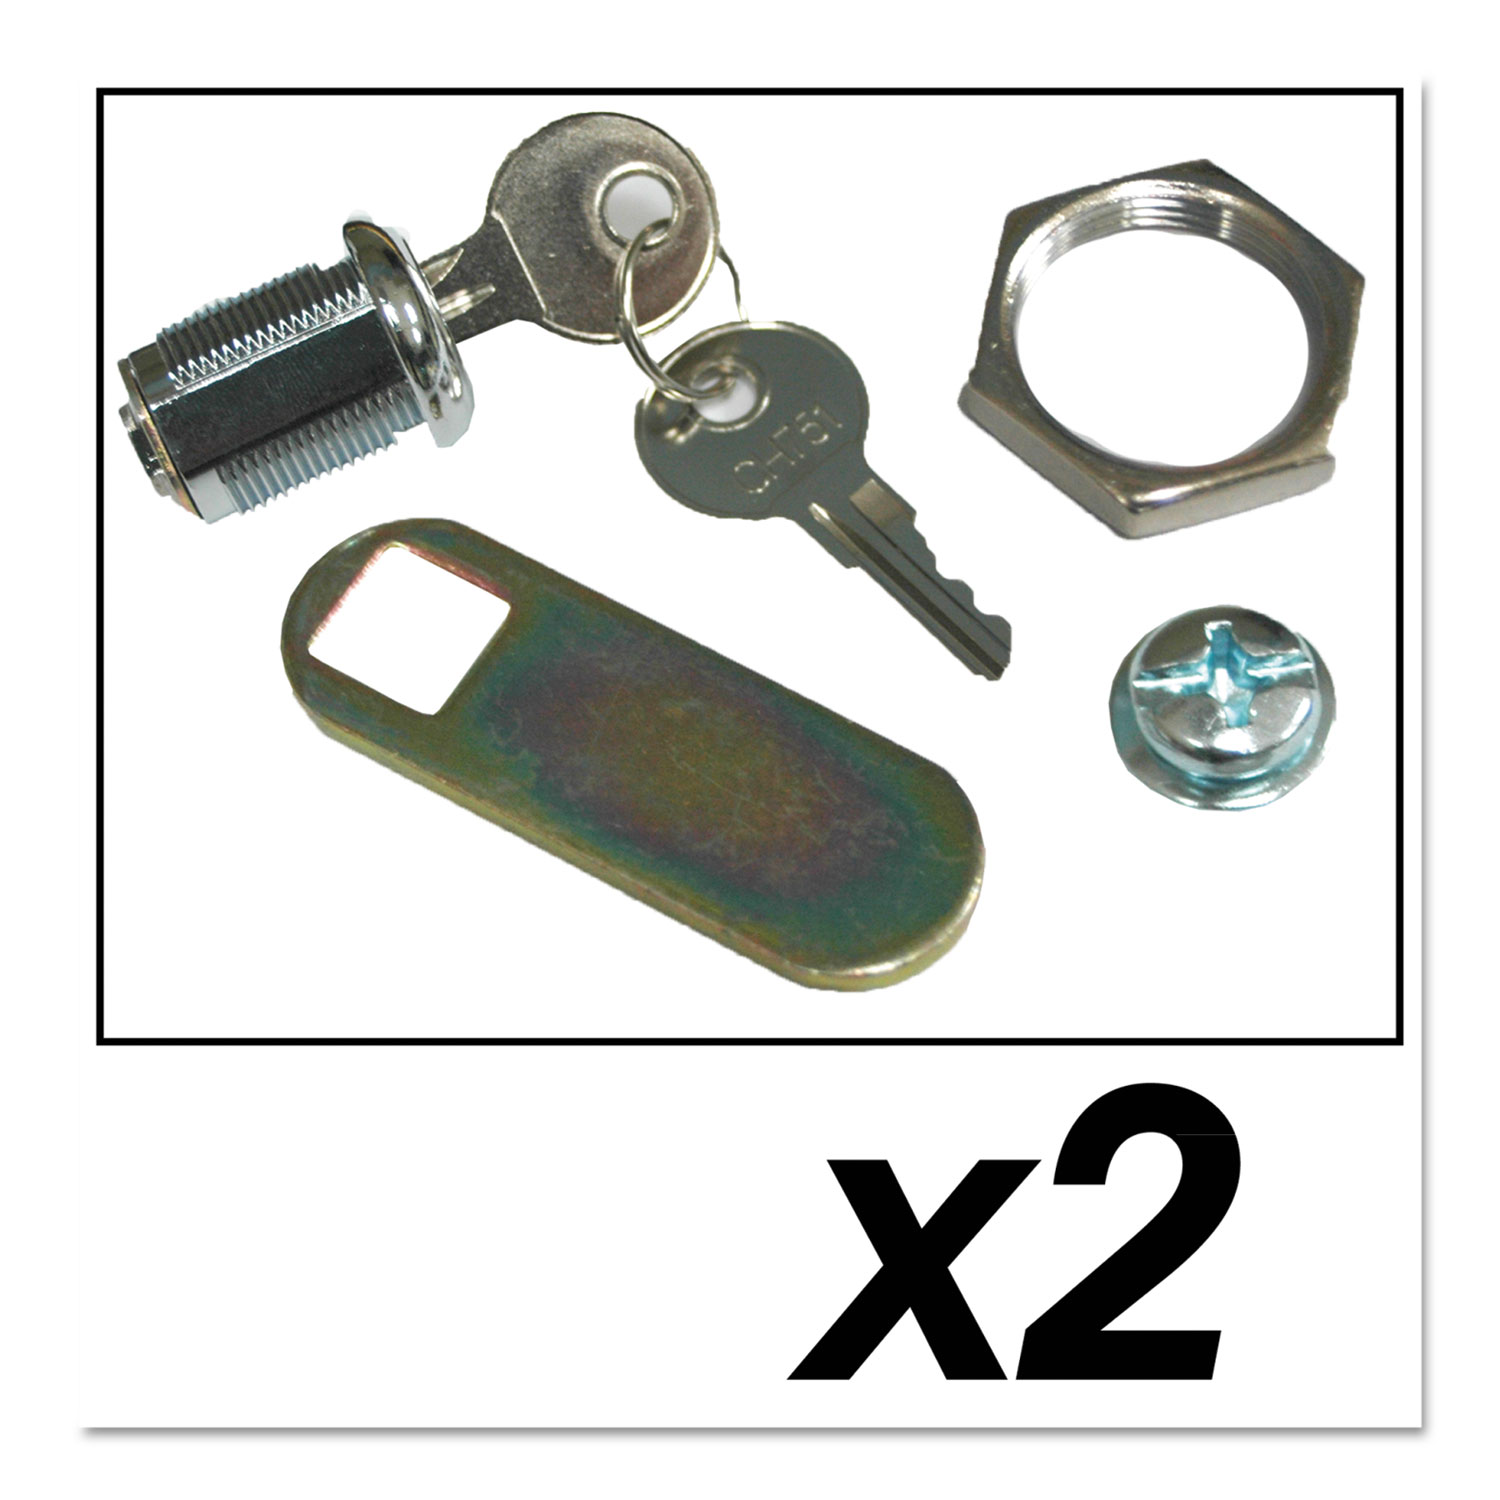 Replacement Lock and Keys for Cleaning Carts, Silver SGSFG9T73M20000